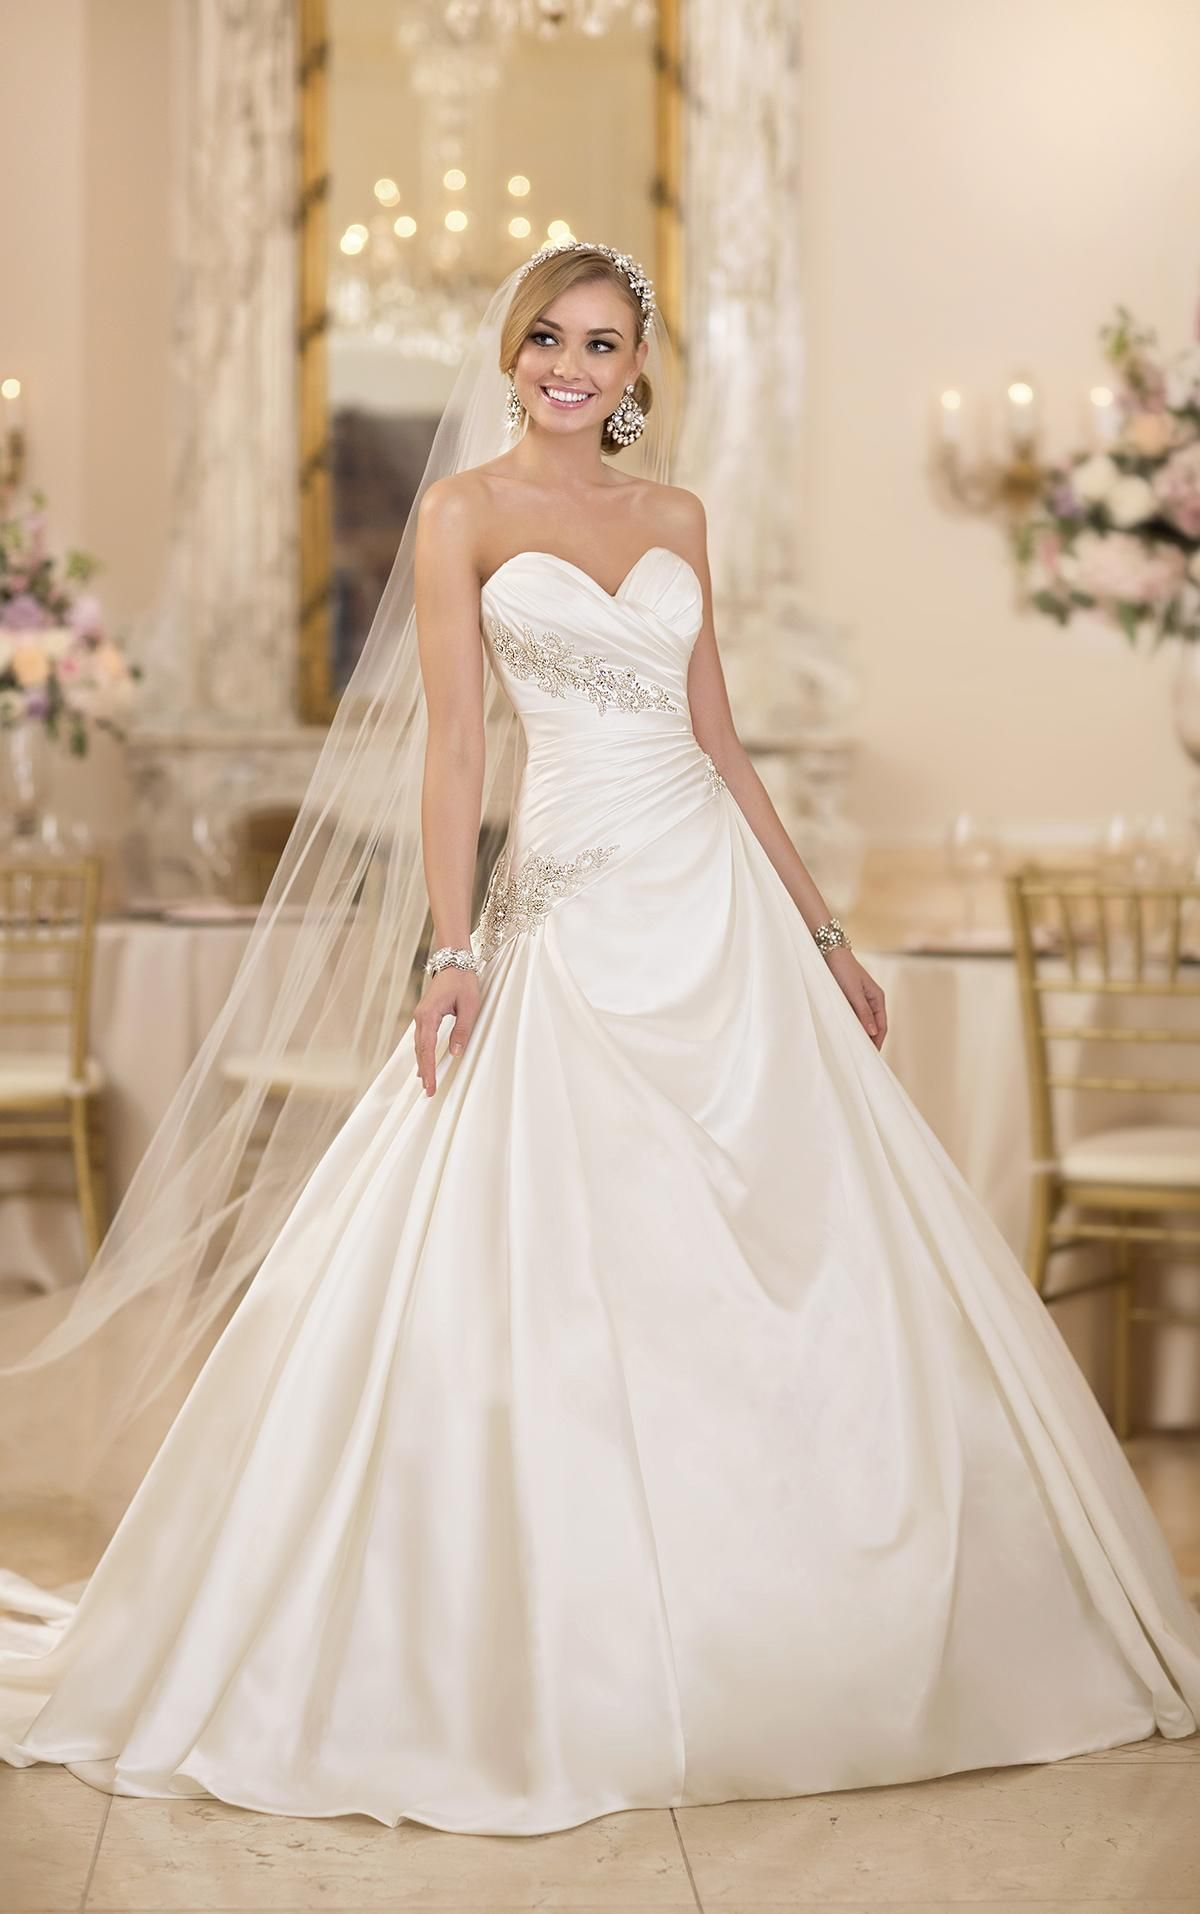 Gold Wedding Dress 2016 Popular Ball Gown Wedding Dresses With